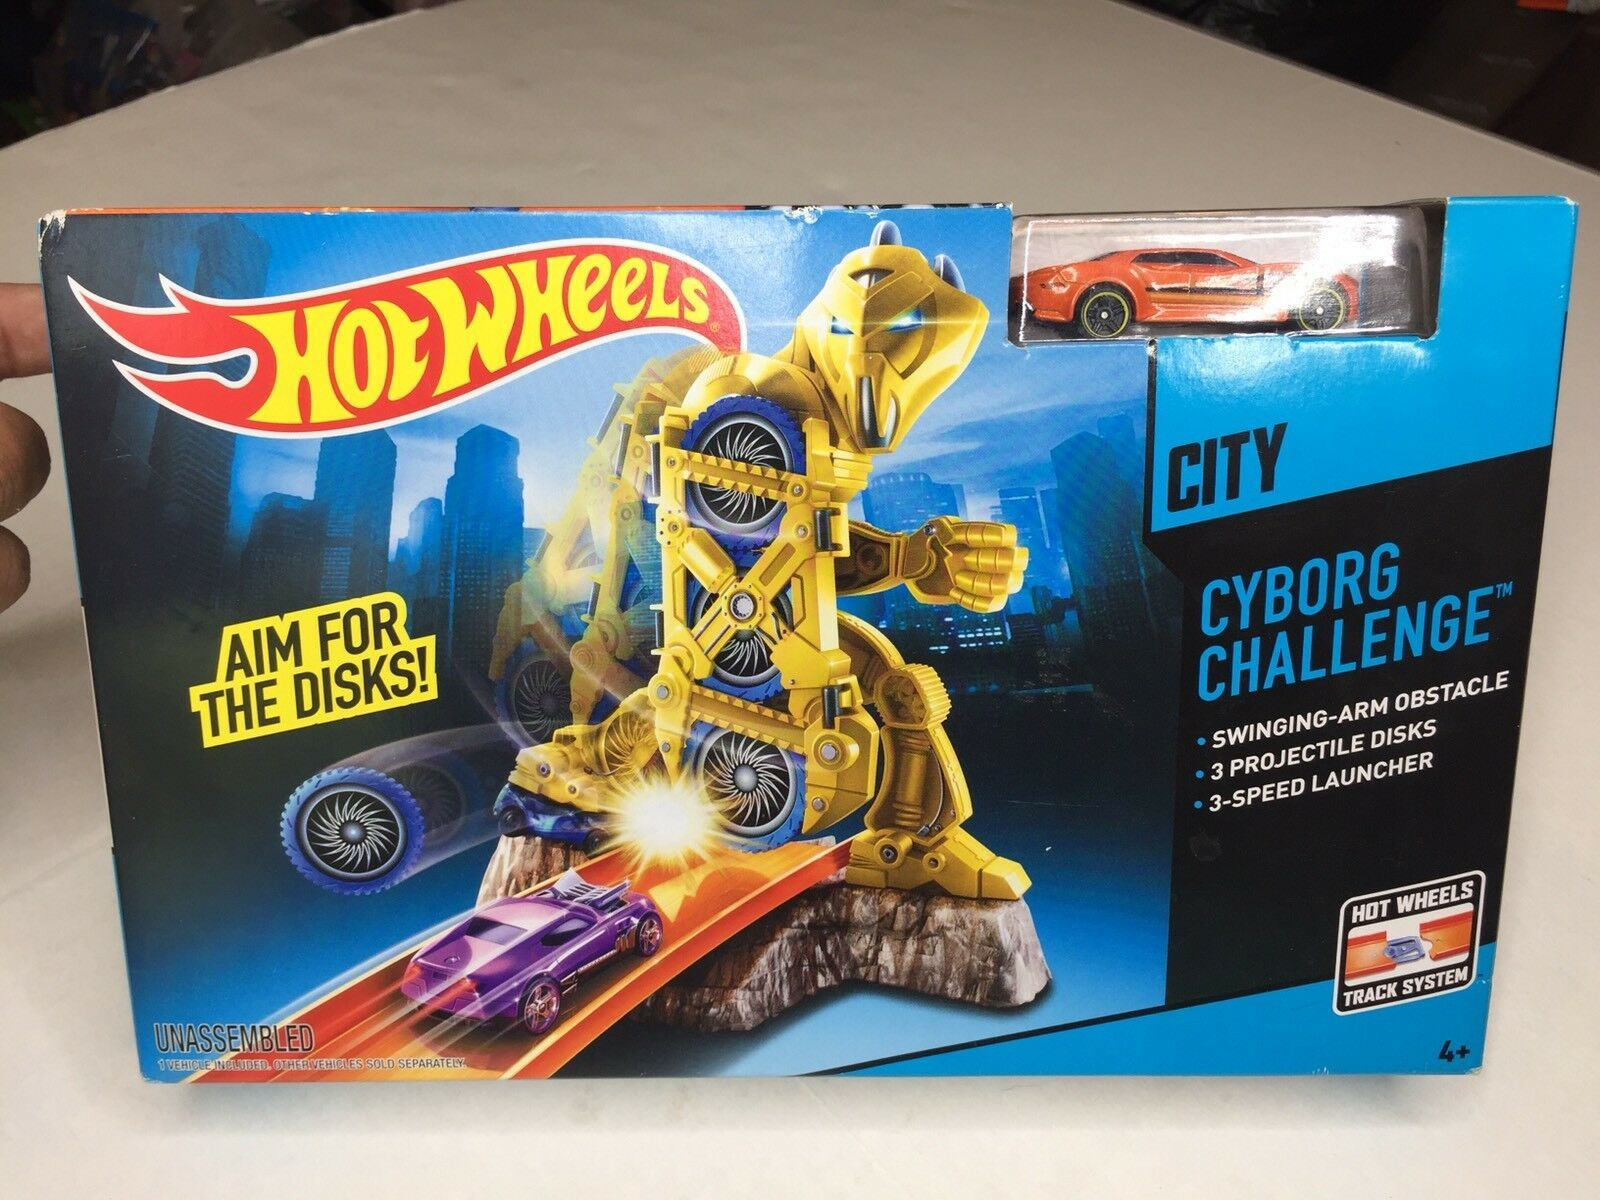 Primary image for Mattel Hot Wheels City Cyborg Challenge Aim For Disks Track System Set NEW